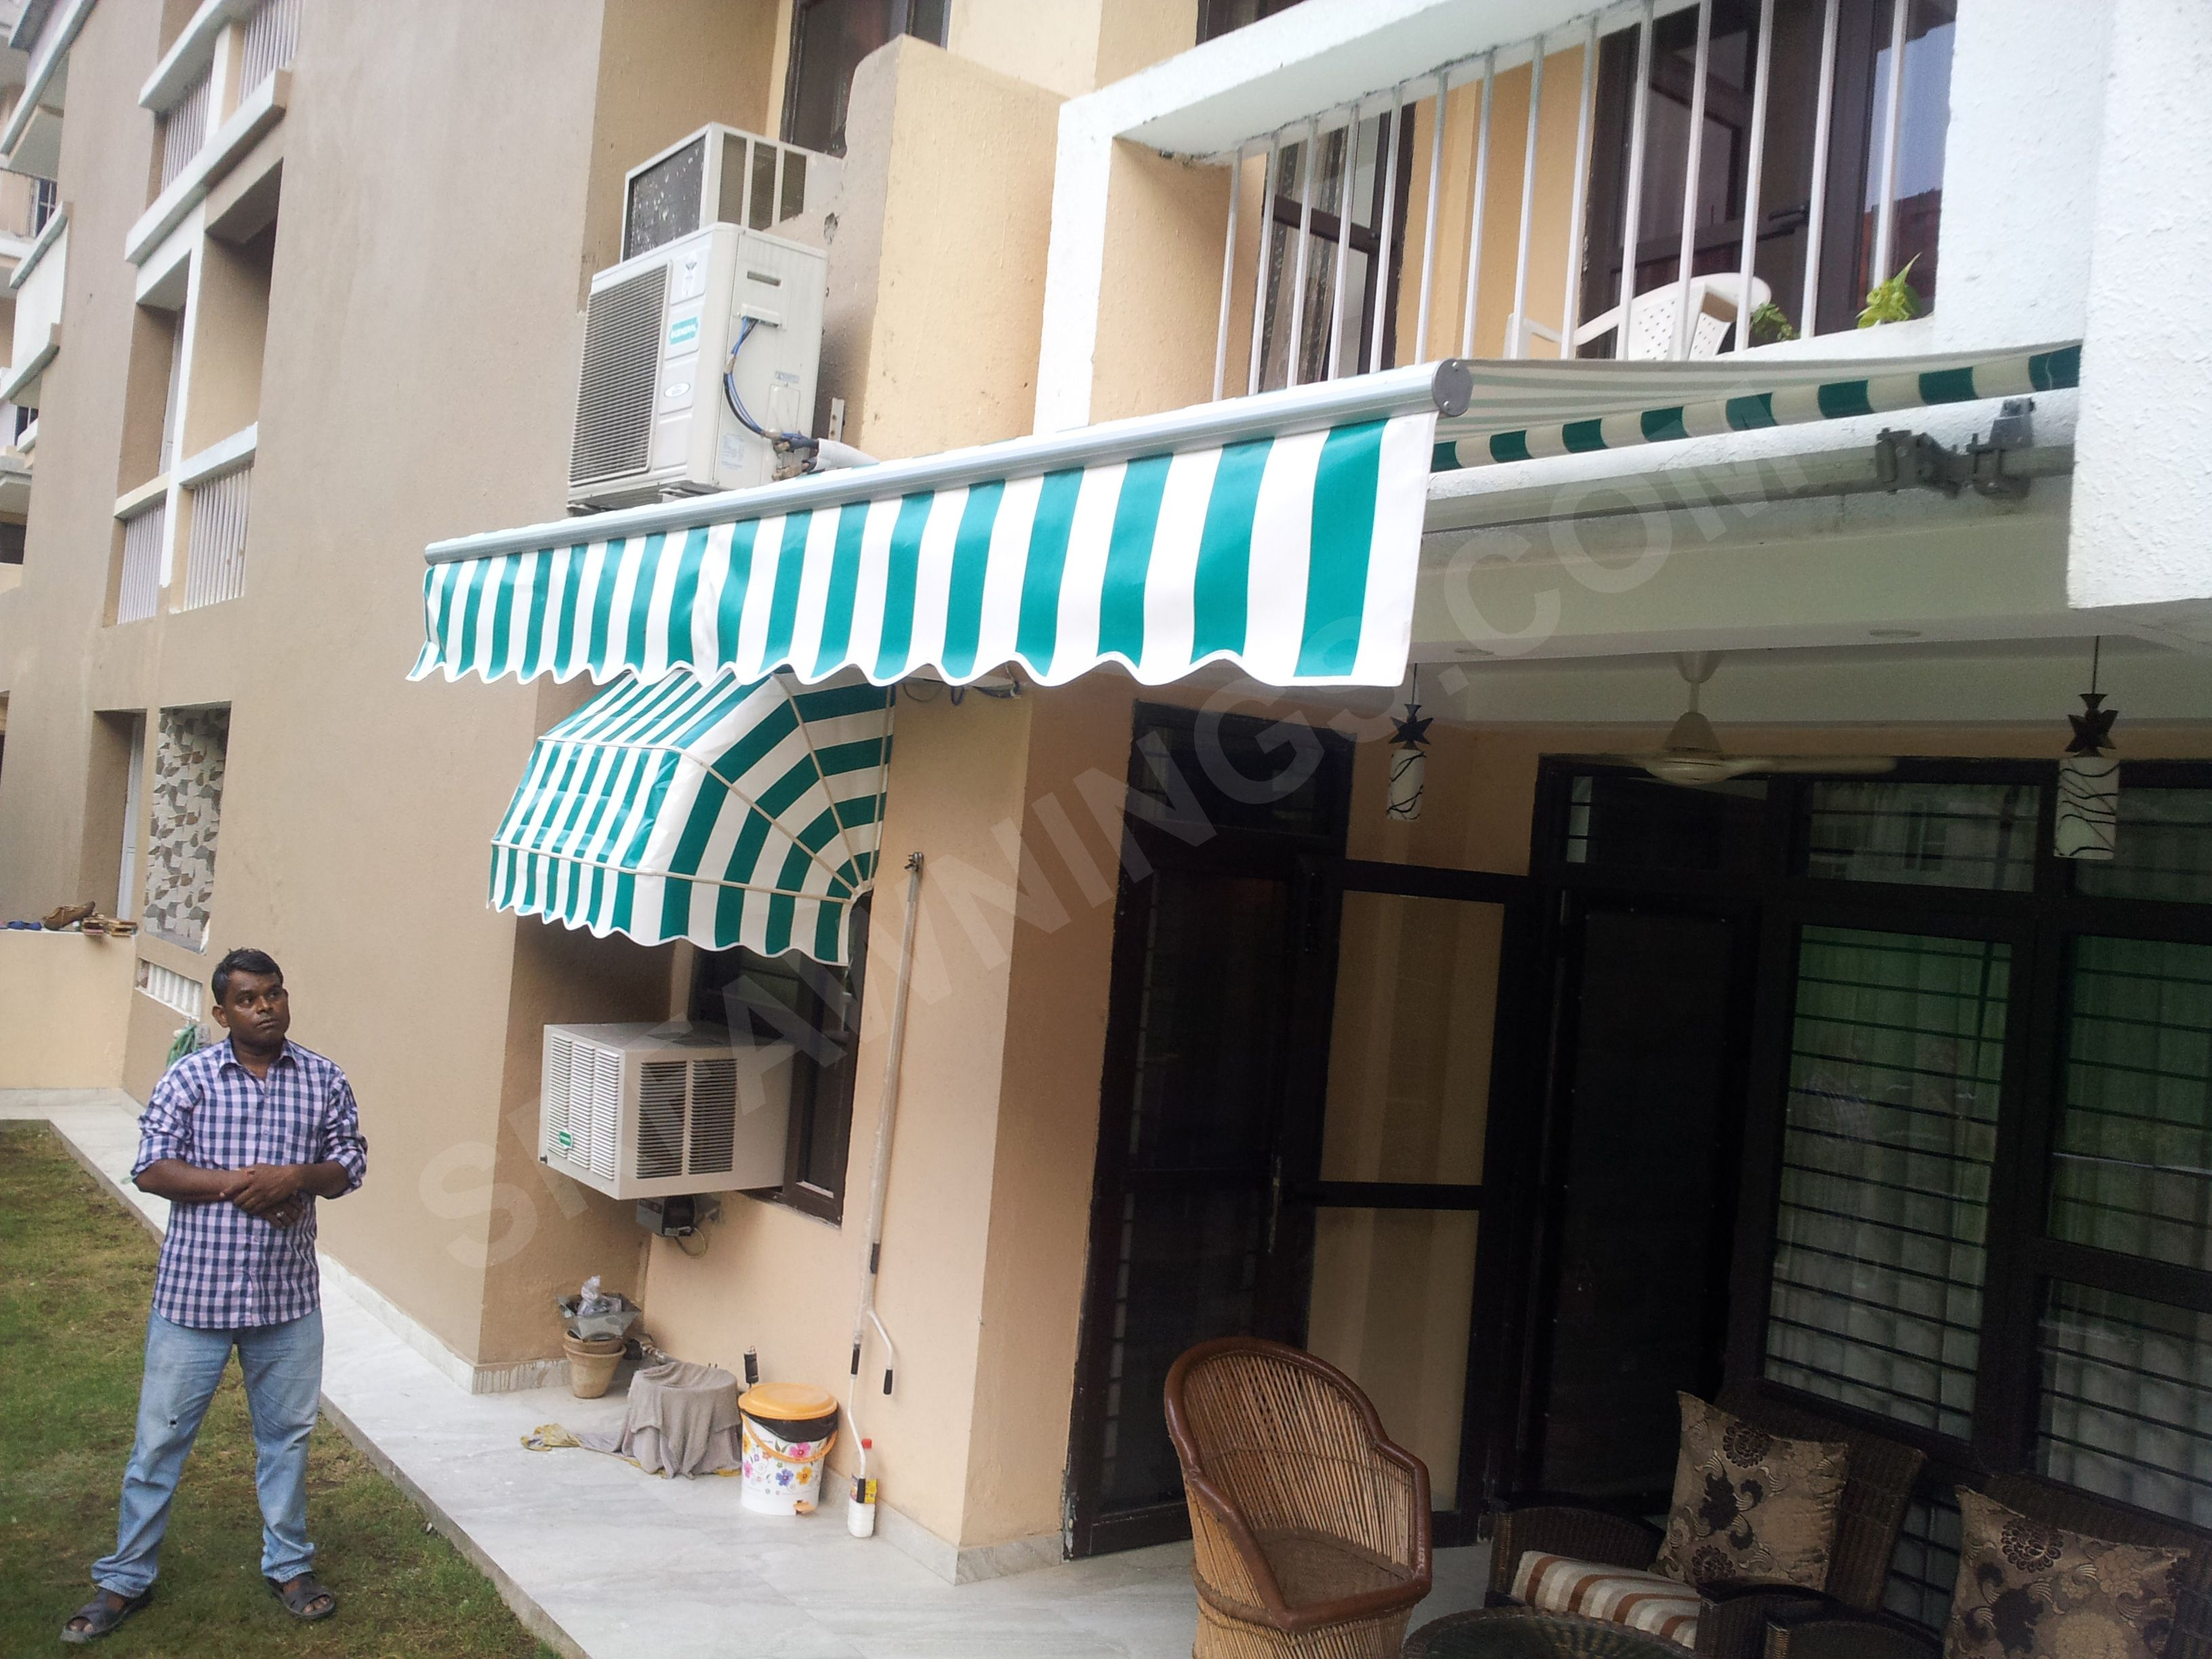 We Are Manufacturer And Supplier Of Retractable Awnings In Gurgaon, Delhi  NCR. The Offered